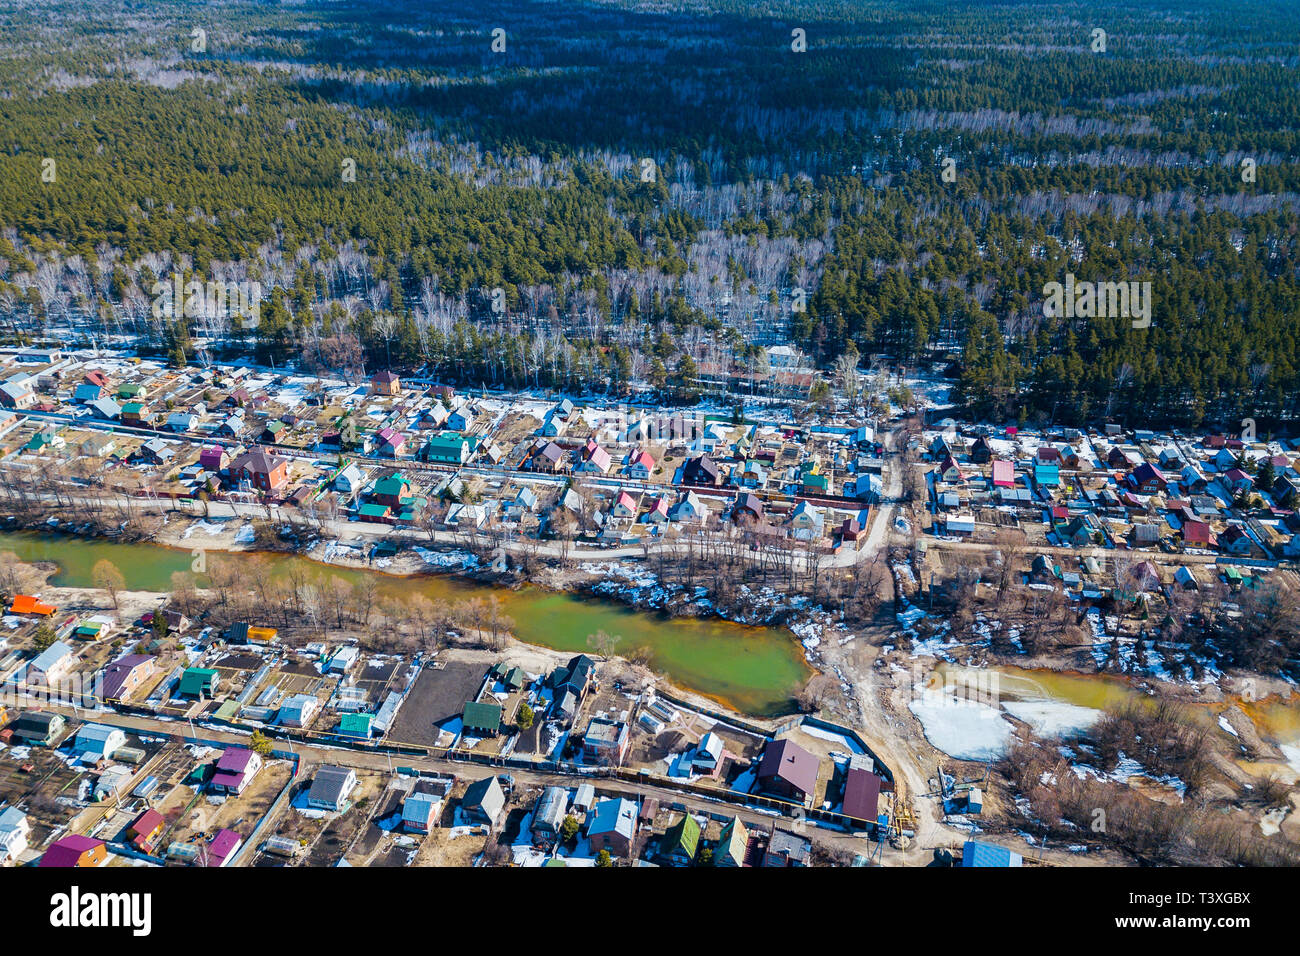 Aerial drone view of an old traditiona village in the forest, on background bly sky. - Stock Image